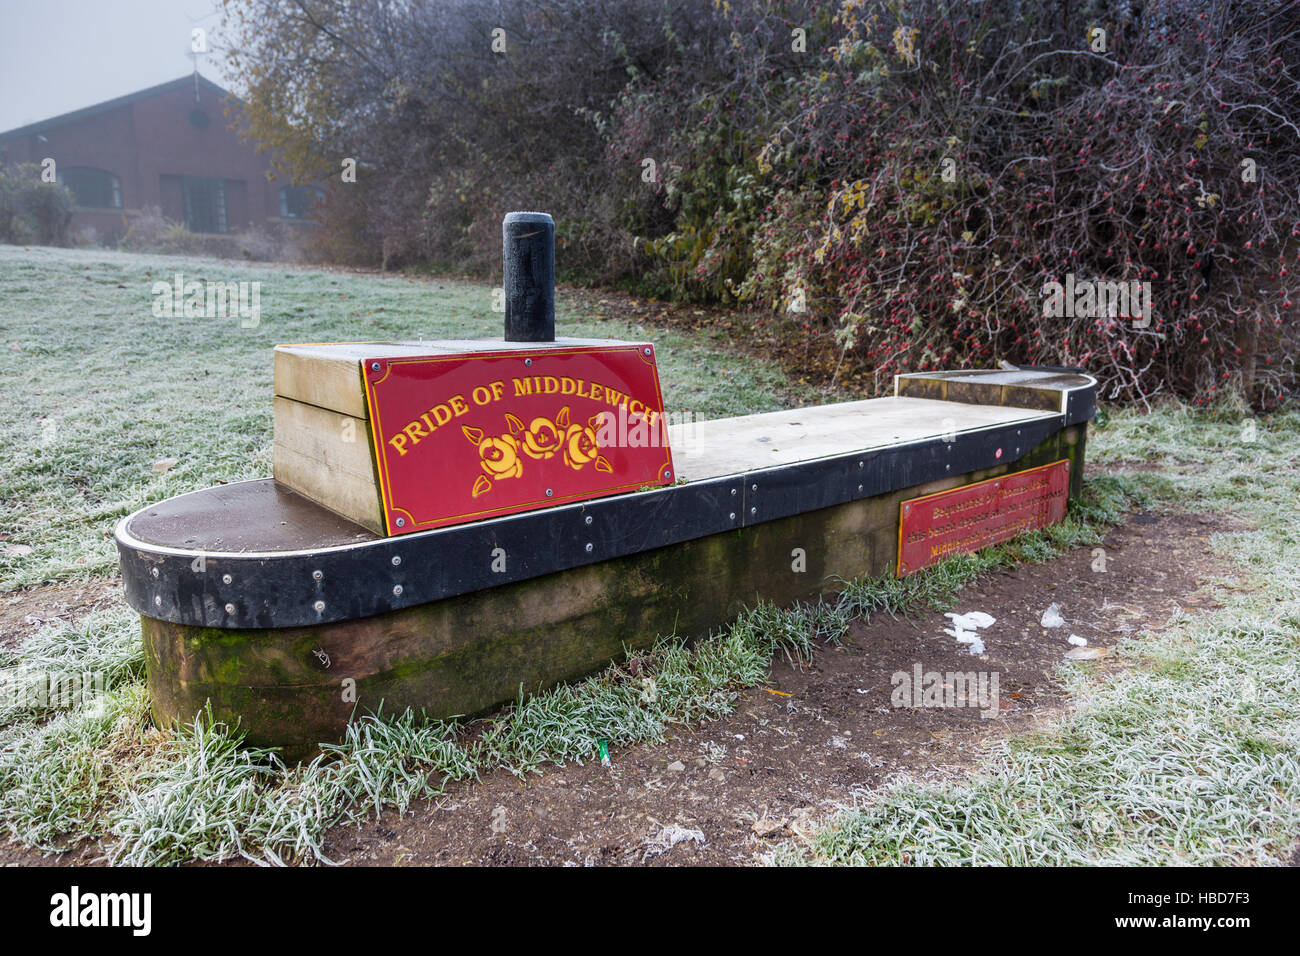 Canal bench on the side of the Trent & Mersey Canal, Middlewich, Cheshire - Stock Image